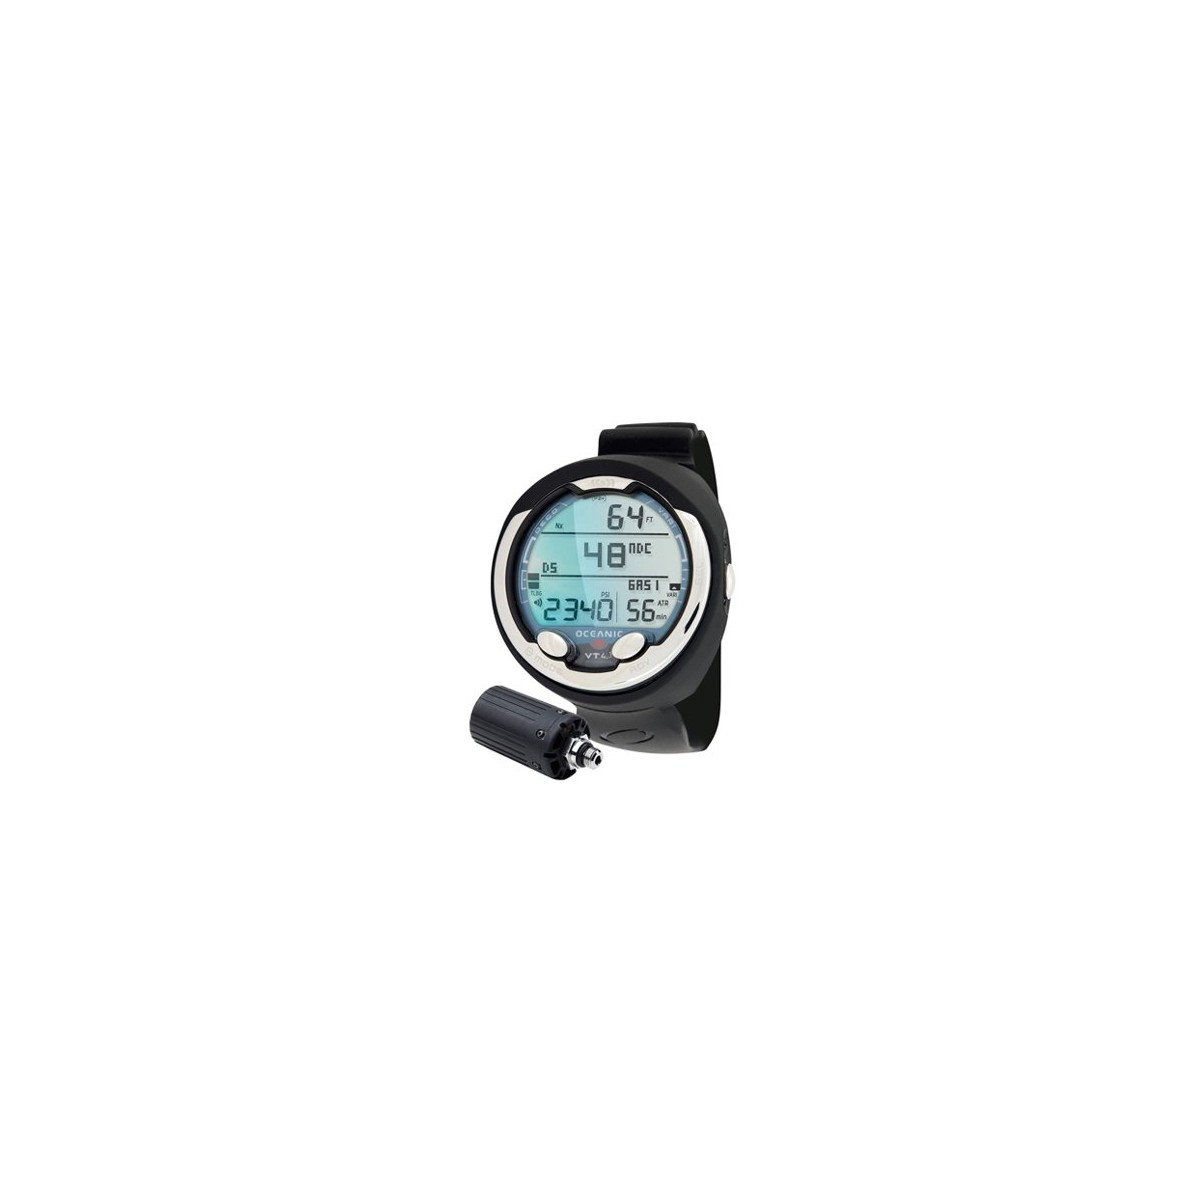 Oceanic VT 4.1 Dual Algorithm Scuba Diving Personal Dive Computer With Transmitter And Download Cable